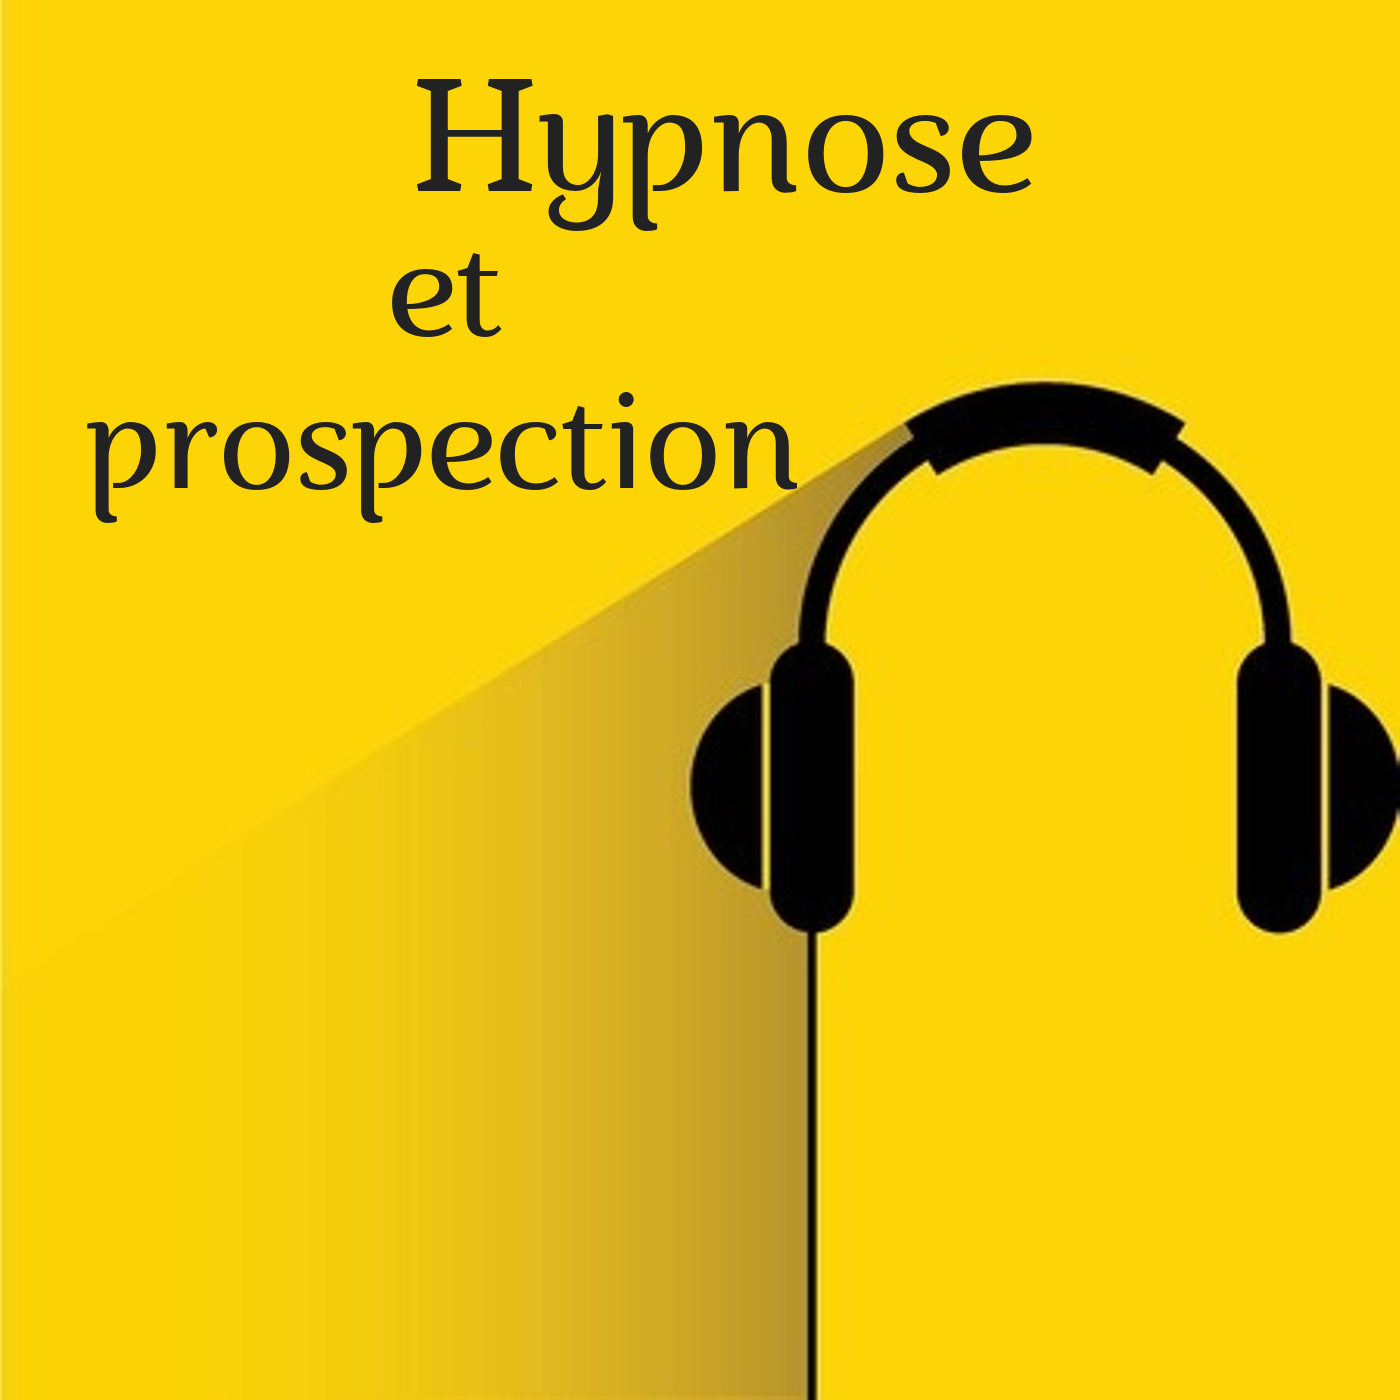 Hypnose et prospection